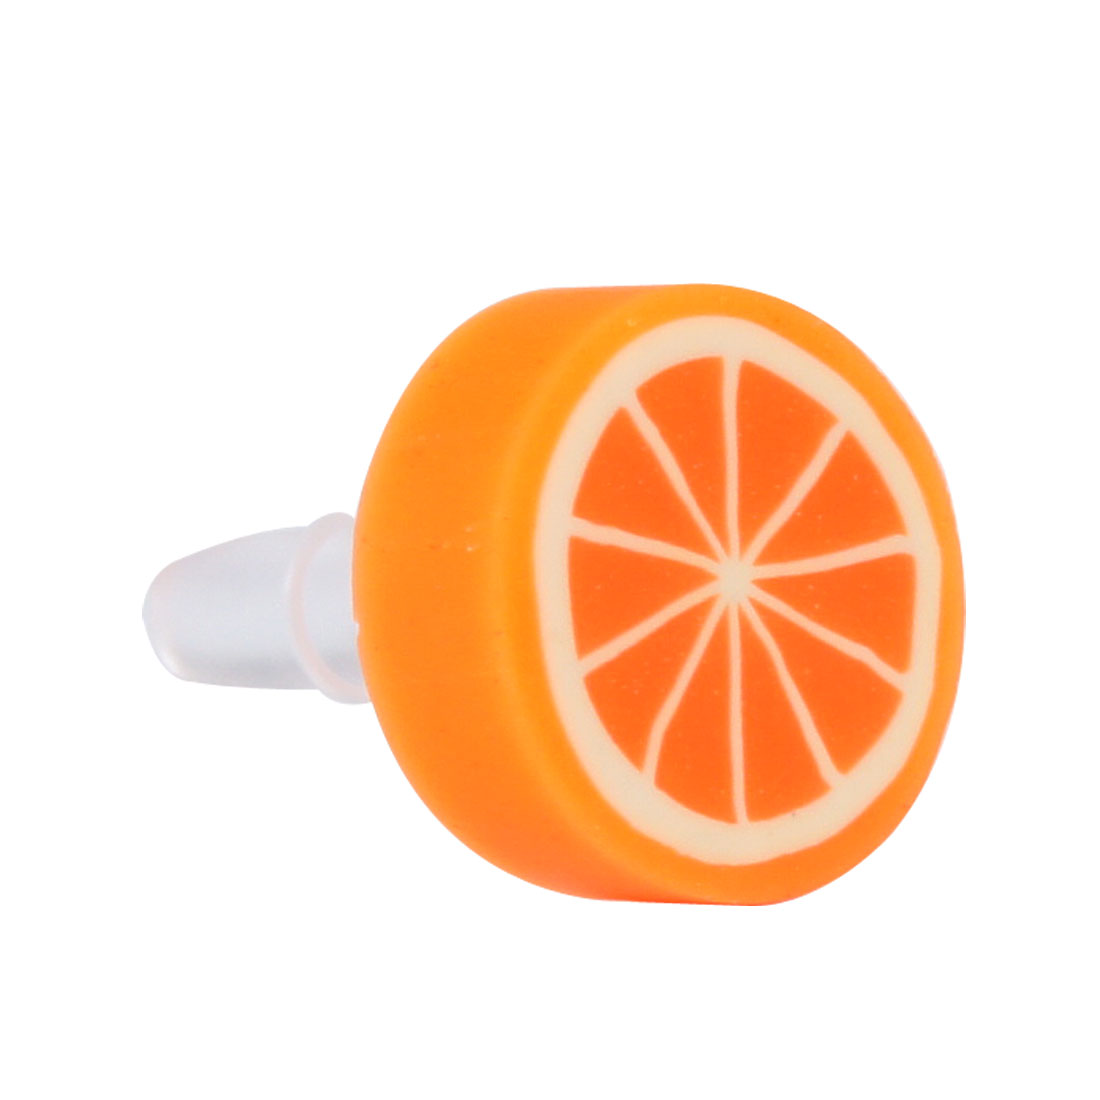 Round Fruit Orange Design 3.5mm Anti Dust Earphone Ear Cap for Mobile Phone MP3